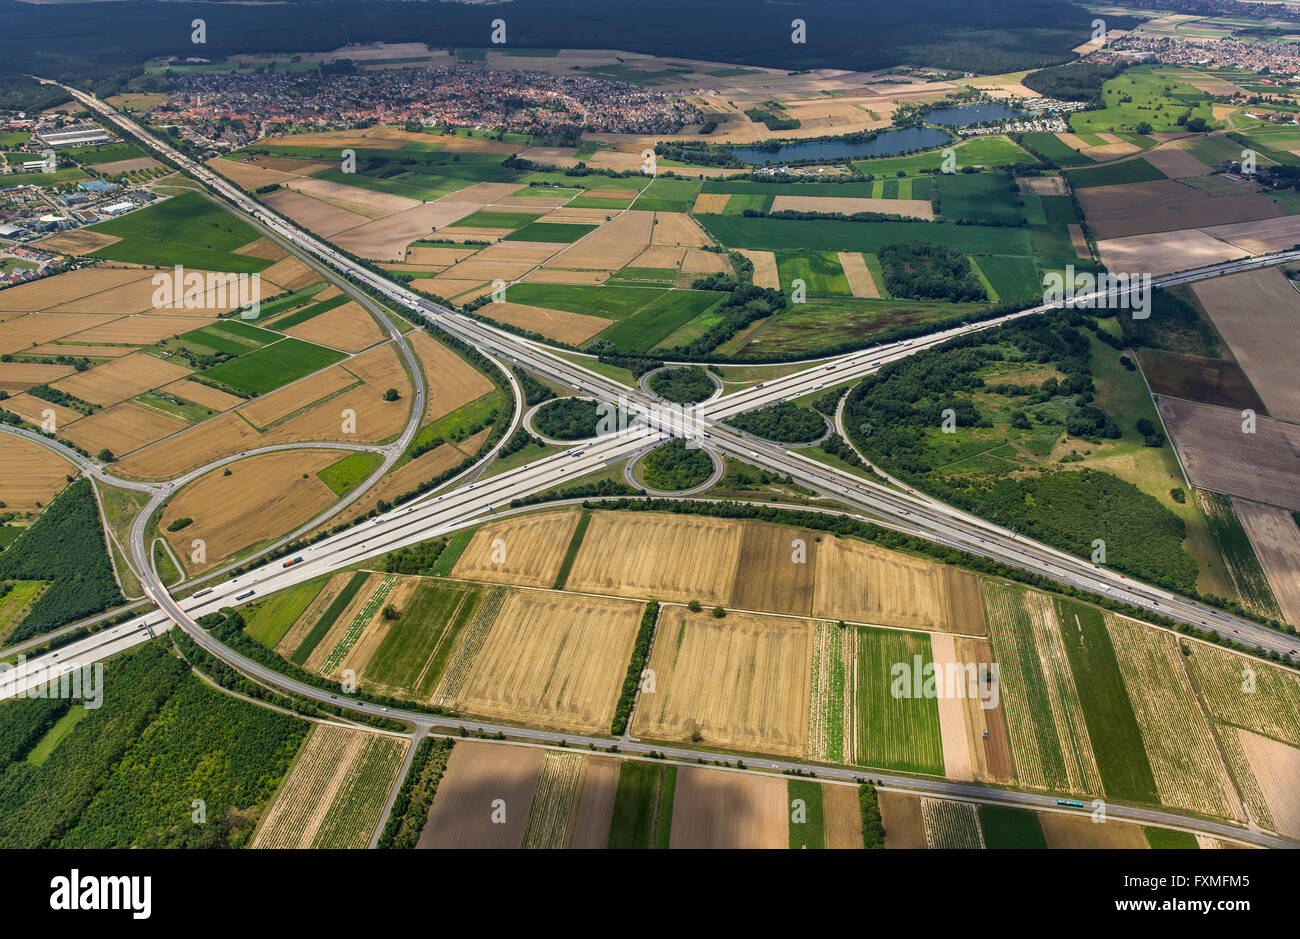 Aerial view, motorway intersection Walldorf, A5 and A6, Shamrock, Walldorf, Baden-Wurttemberg, Germany, Europe, - Stock Image